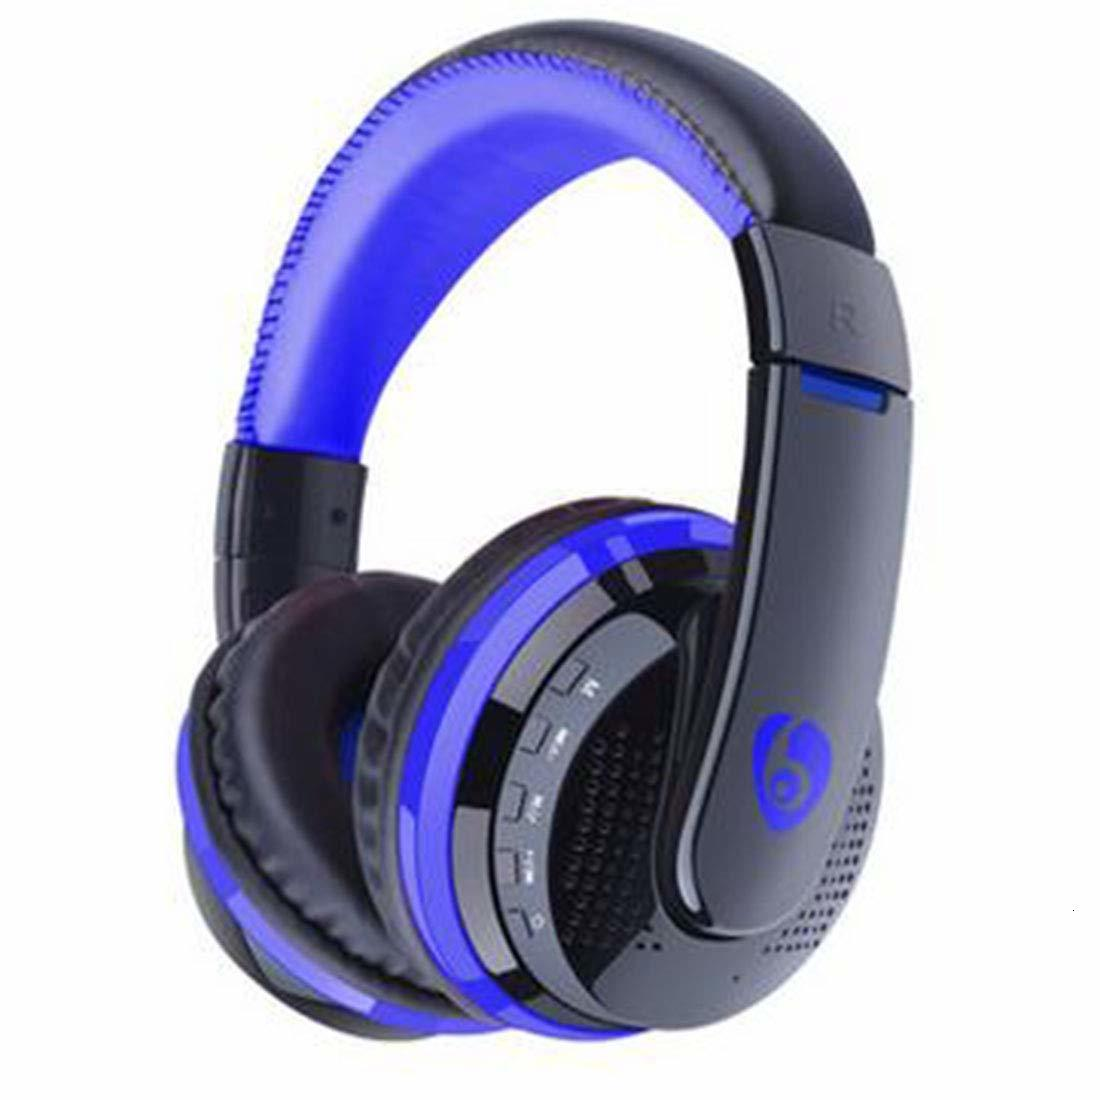 Mx666 Wireless Headphones Bluetooth Headset Foldable Headphone Adjustable Earphones With Microphone For Pc Laptop Phone Buy At The Price Of 21 23 In Aliexpress Com Imall Com